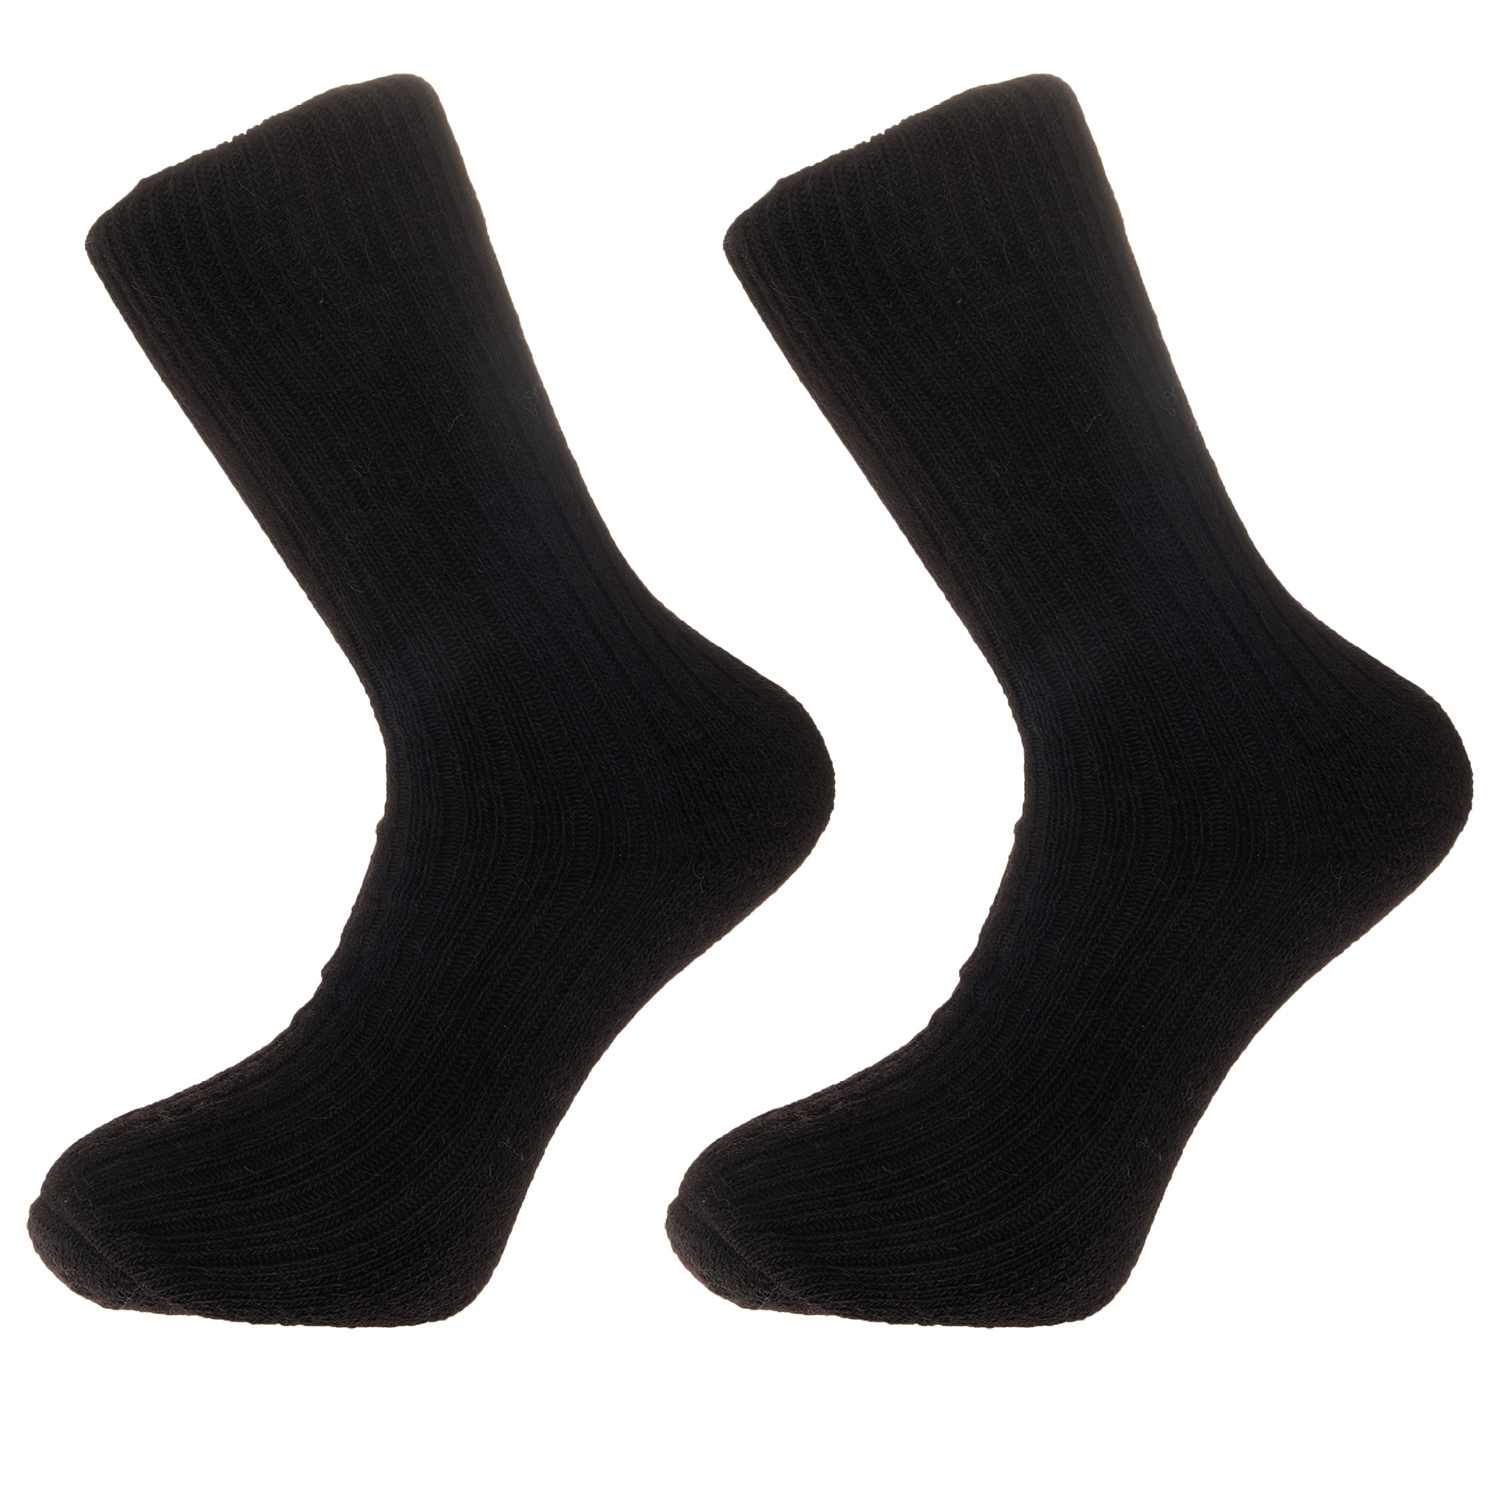 Jet Black Alpaca walking socks Thick Socks 75% Alpaca wool. Walking, climbing, hiking